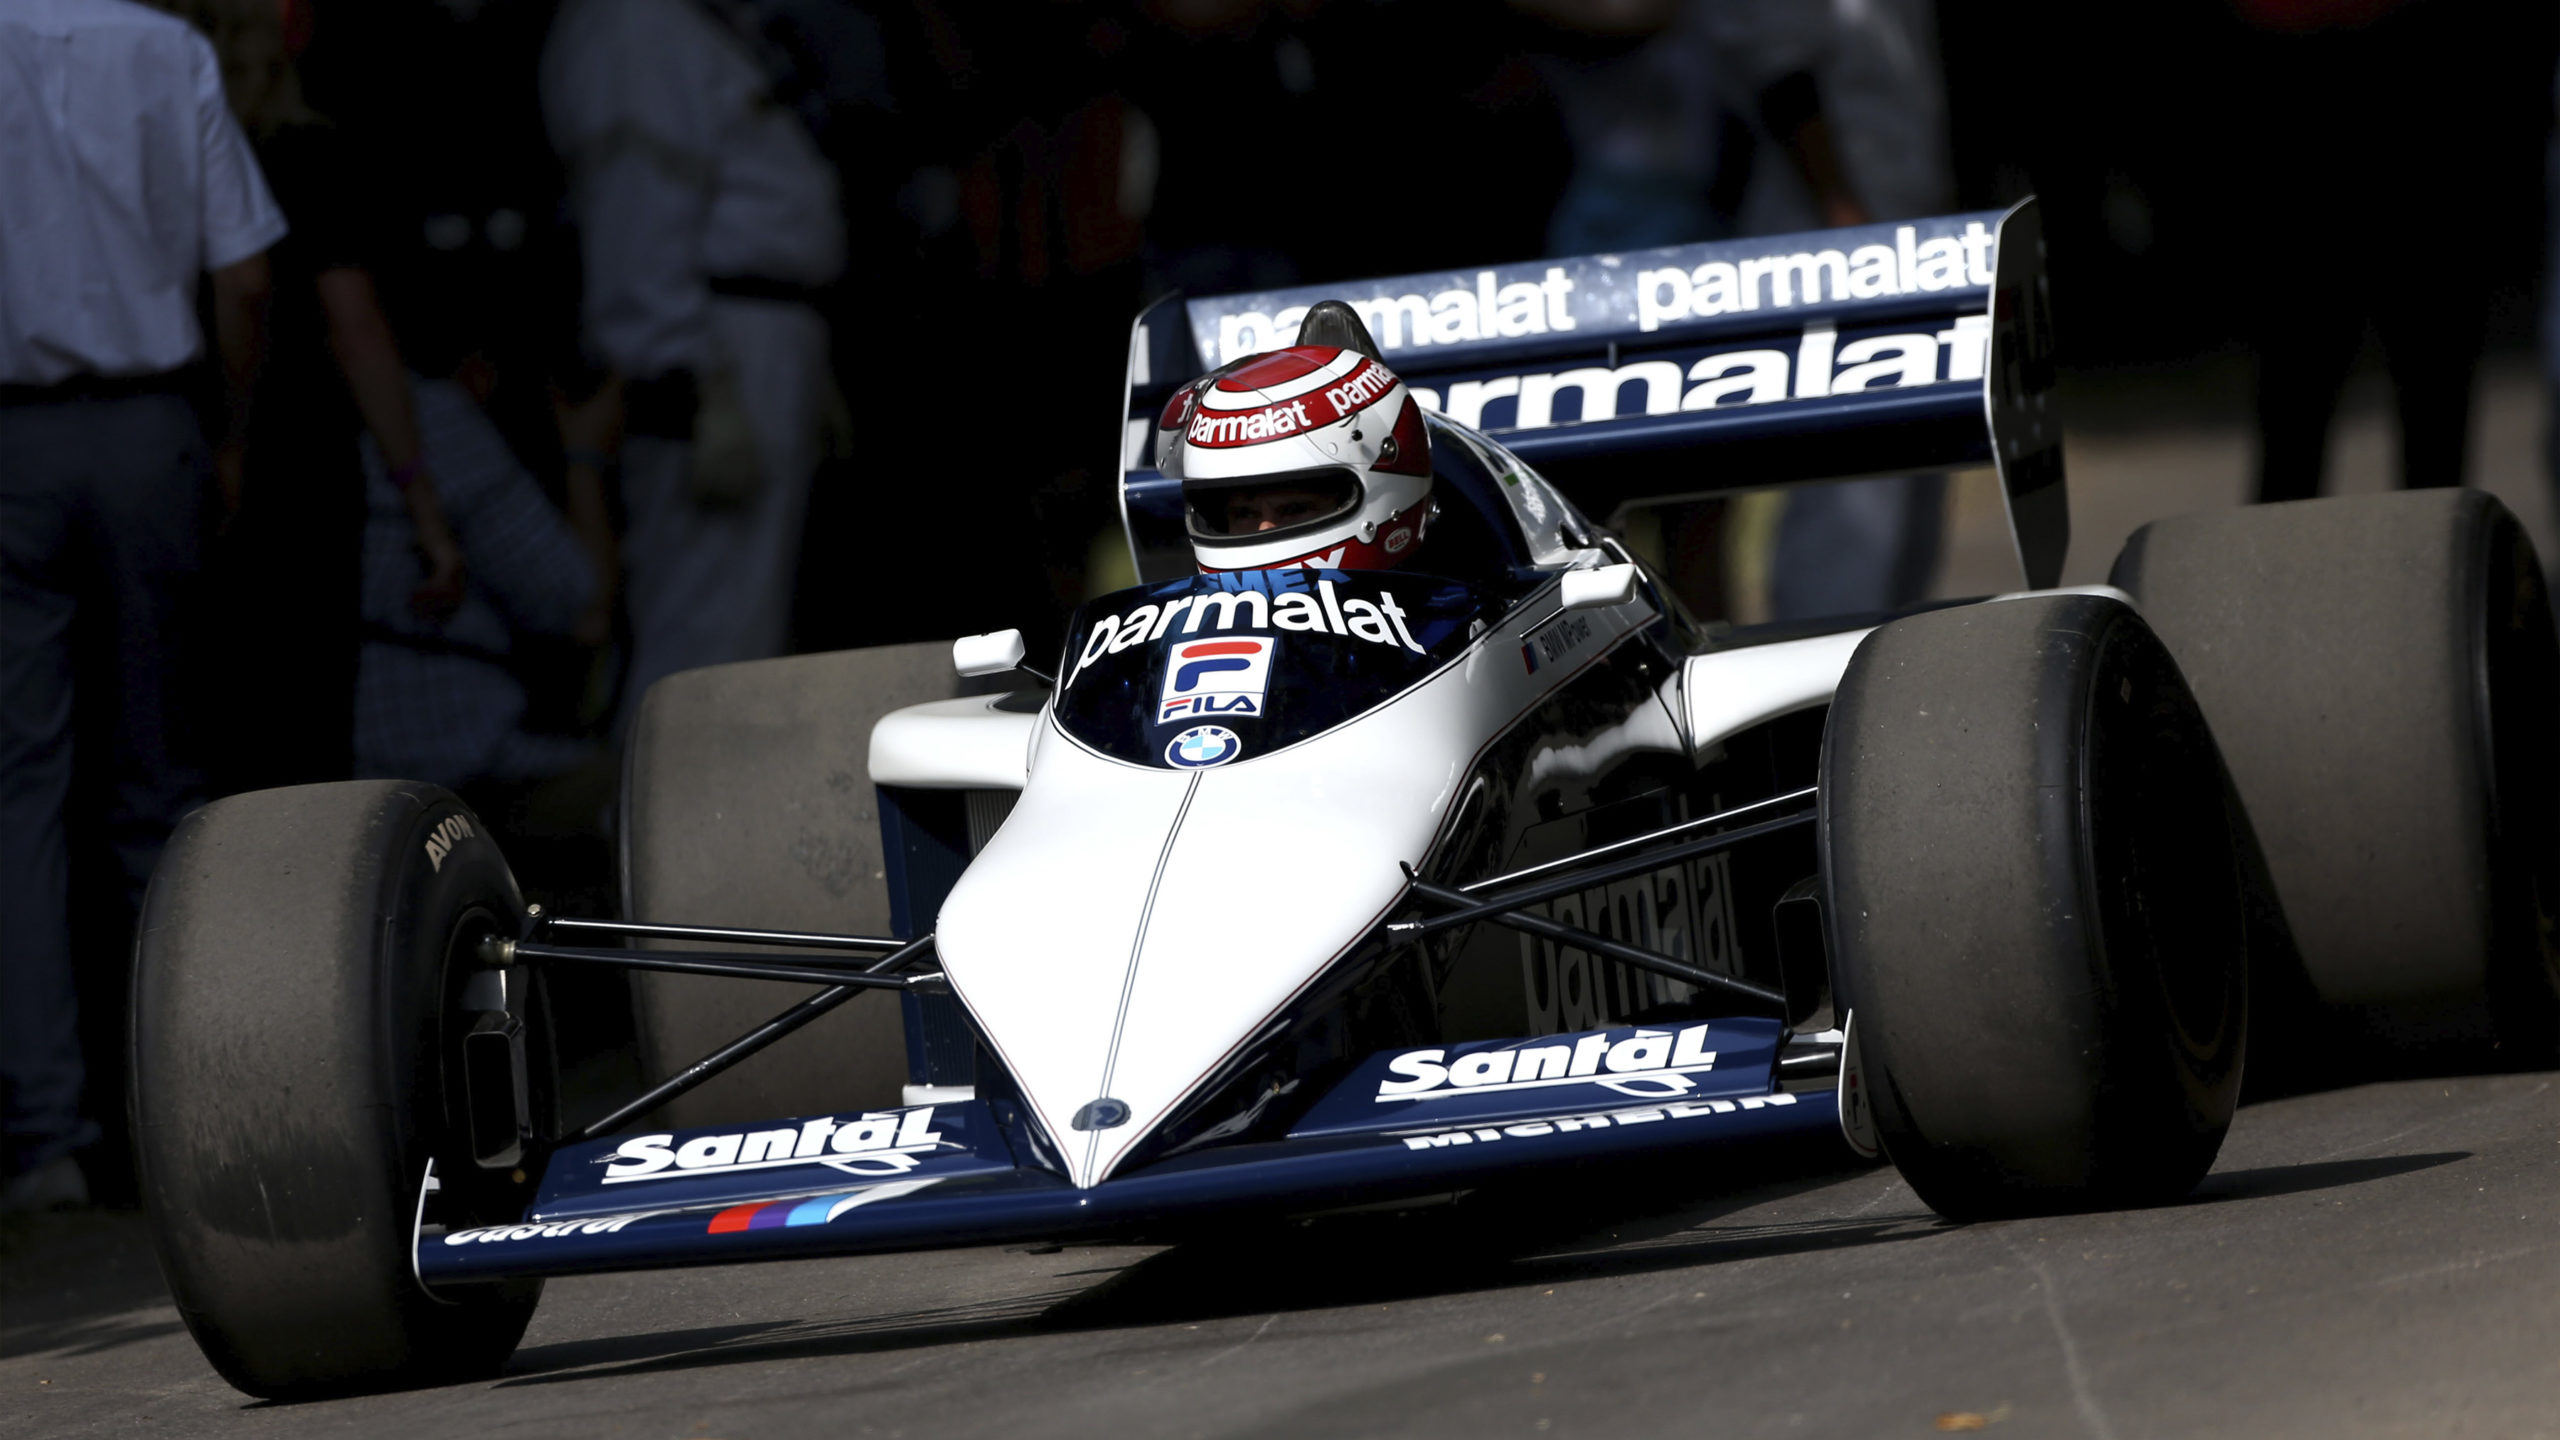 Mystery of the Goodwood lap record: nobody knows what it is